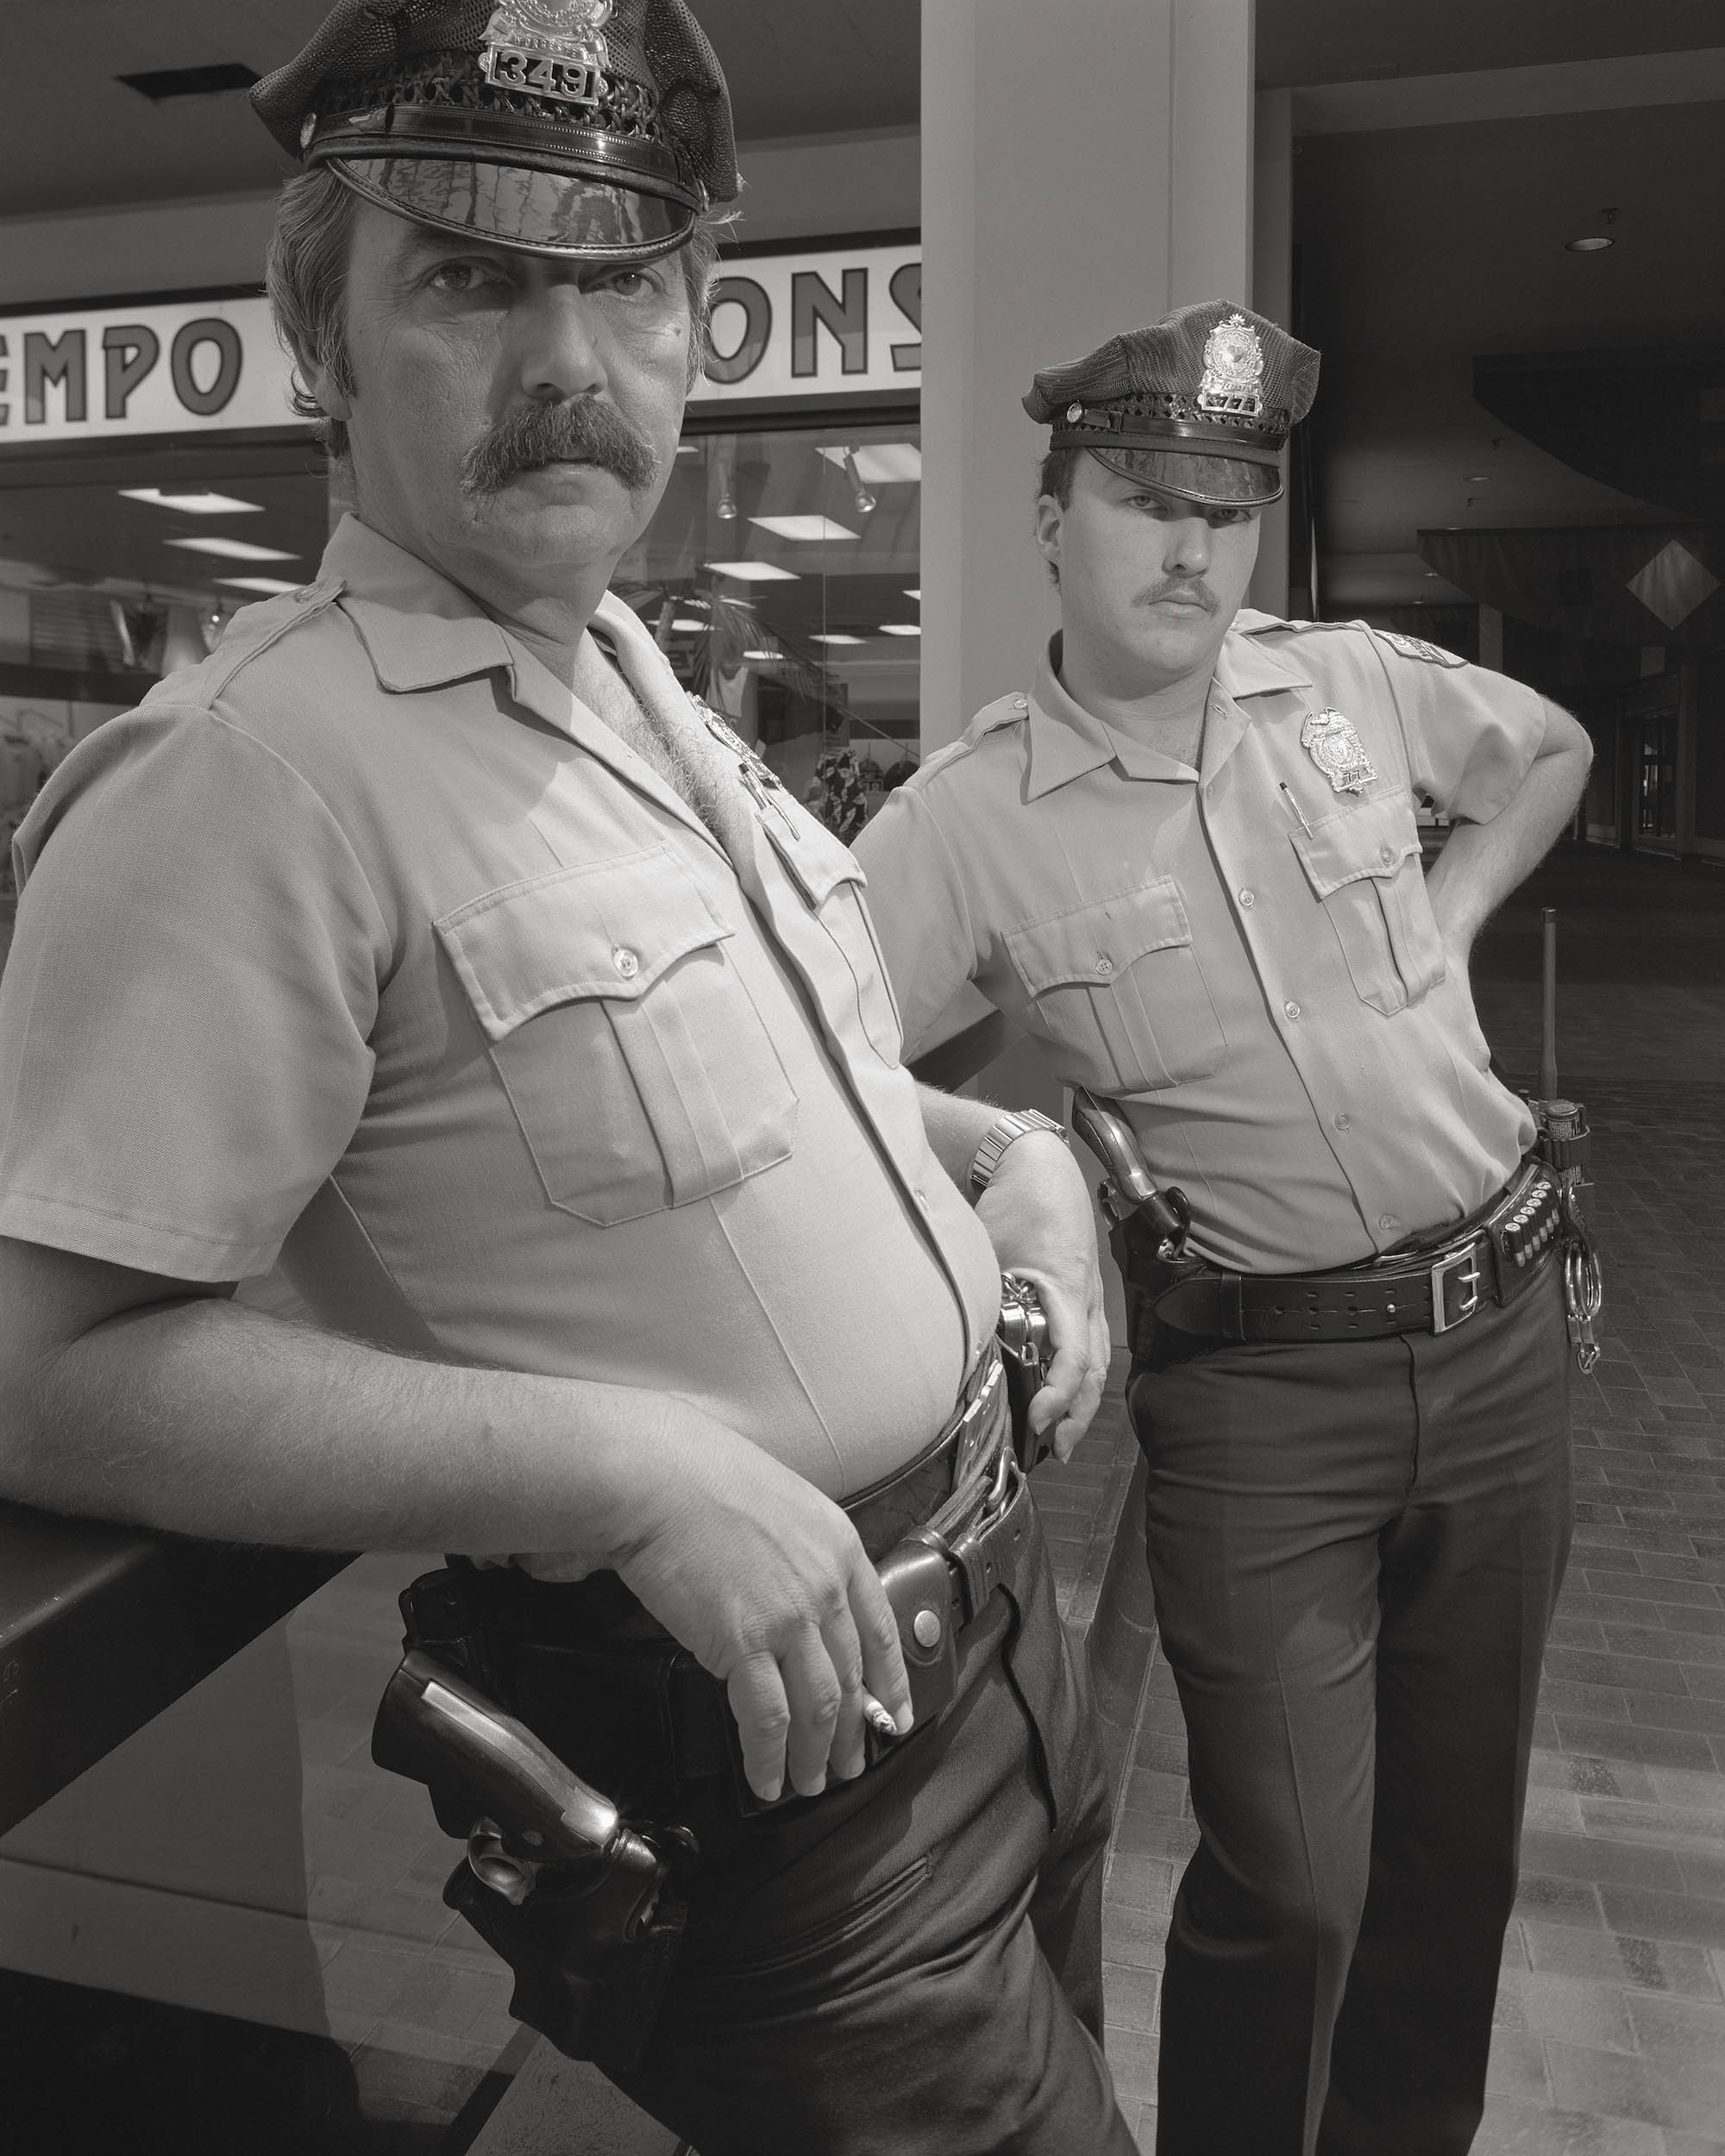 Galleria Police, Saturday Morning - 1986, © Stephen DiRado